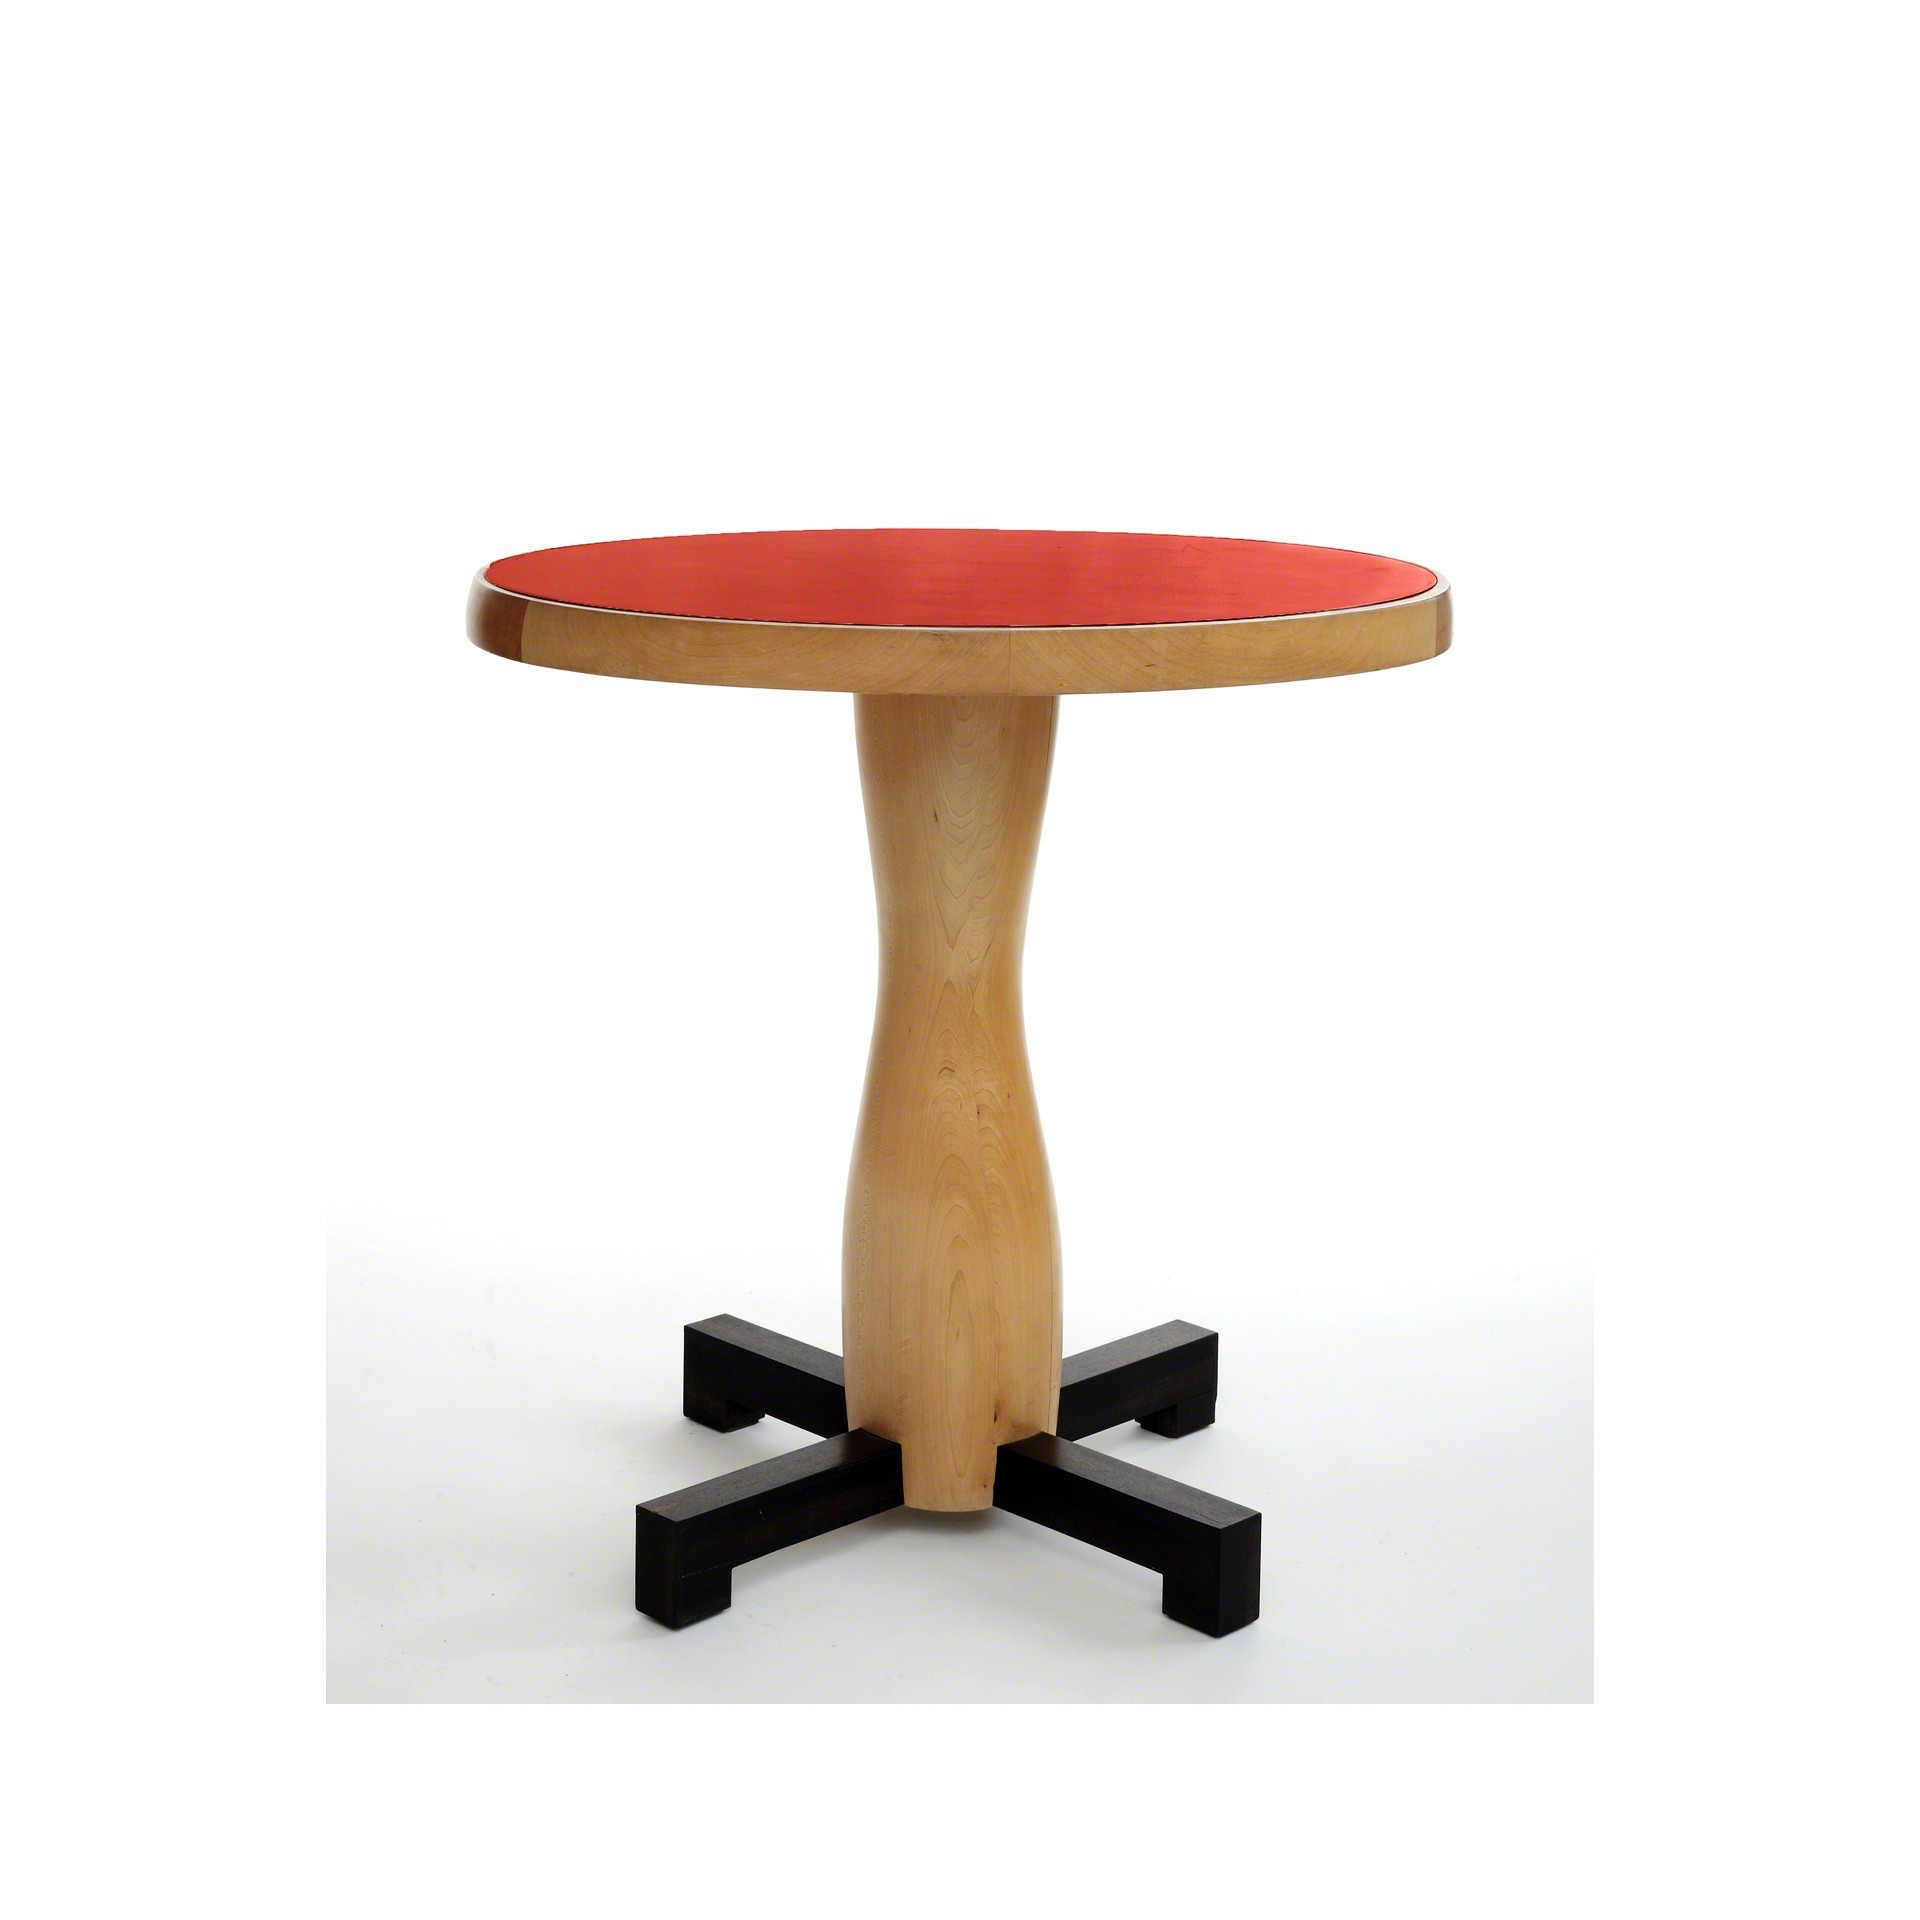 Unique Gueridon table by Jacques Jarrige